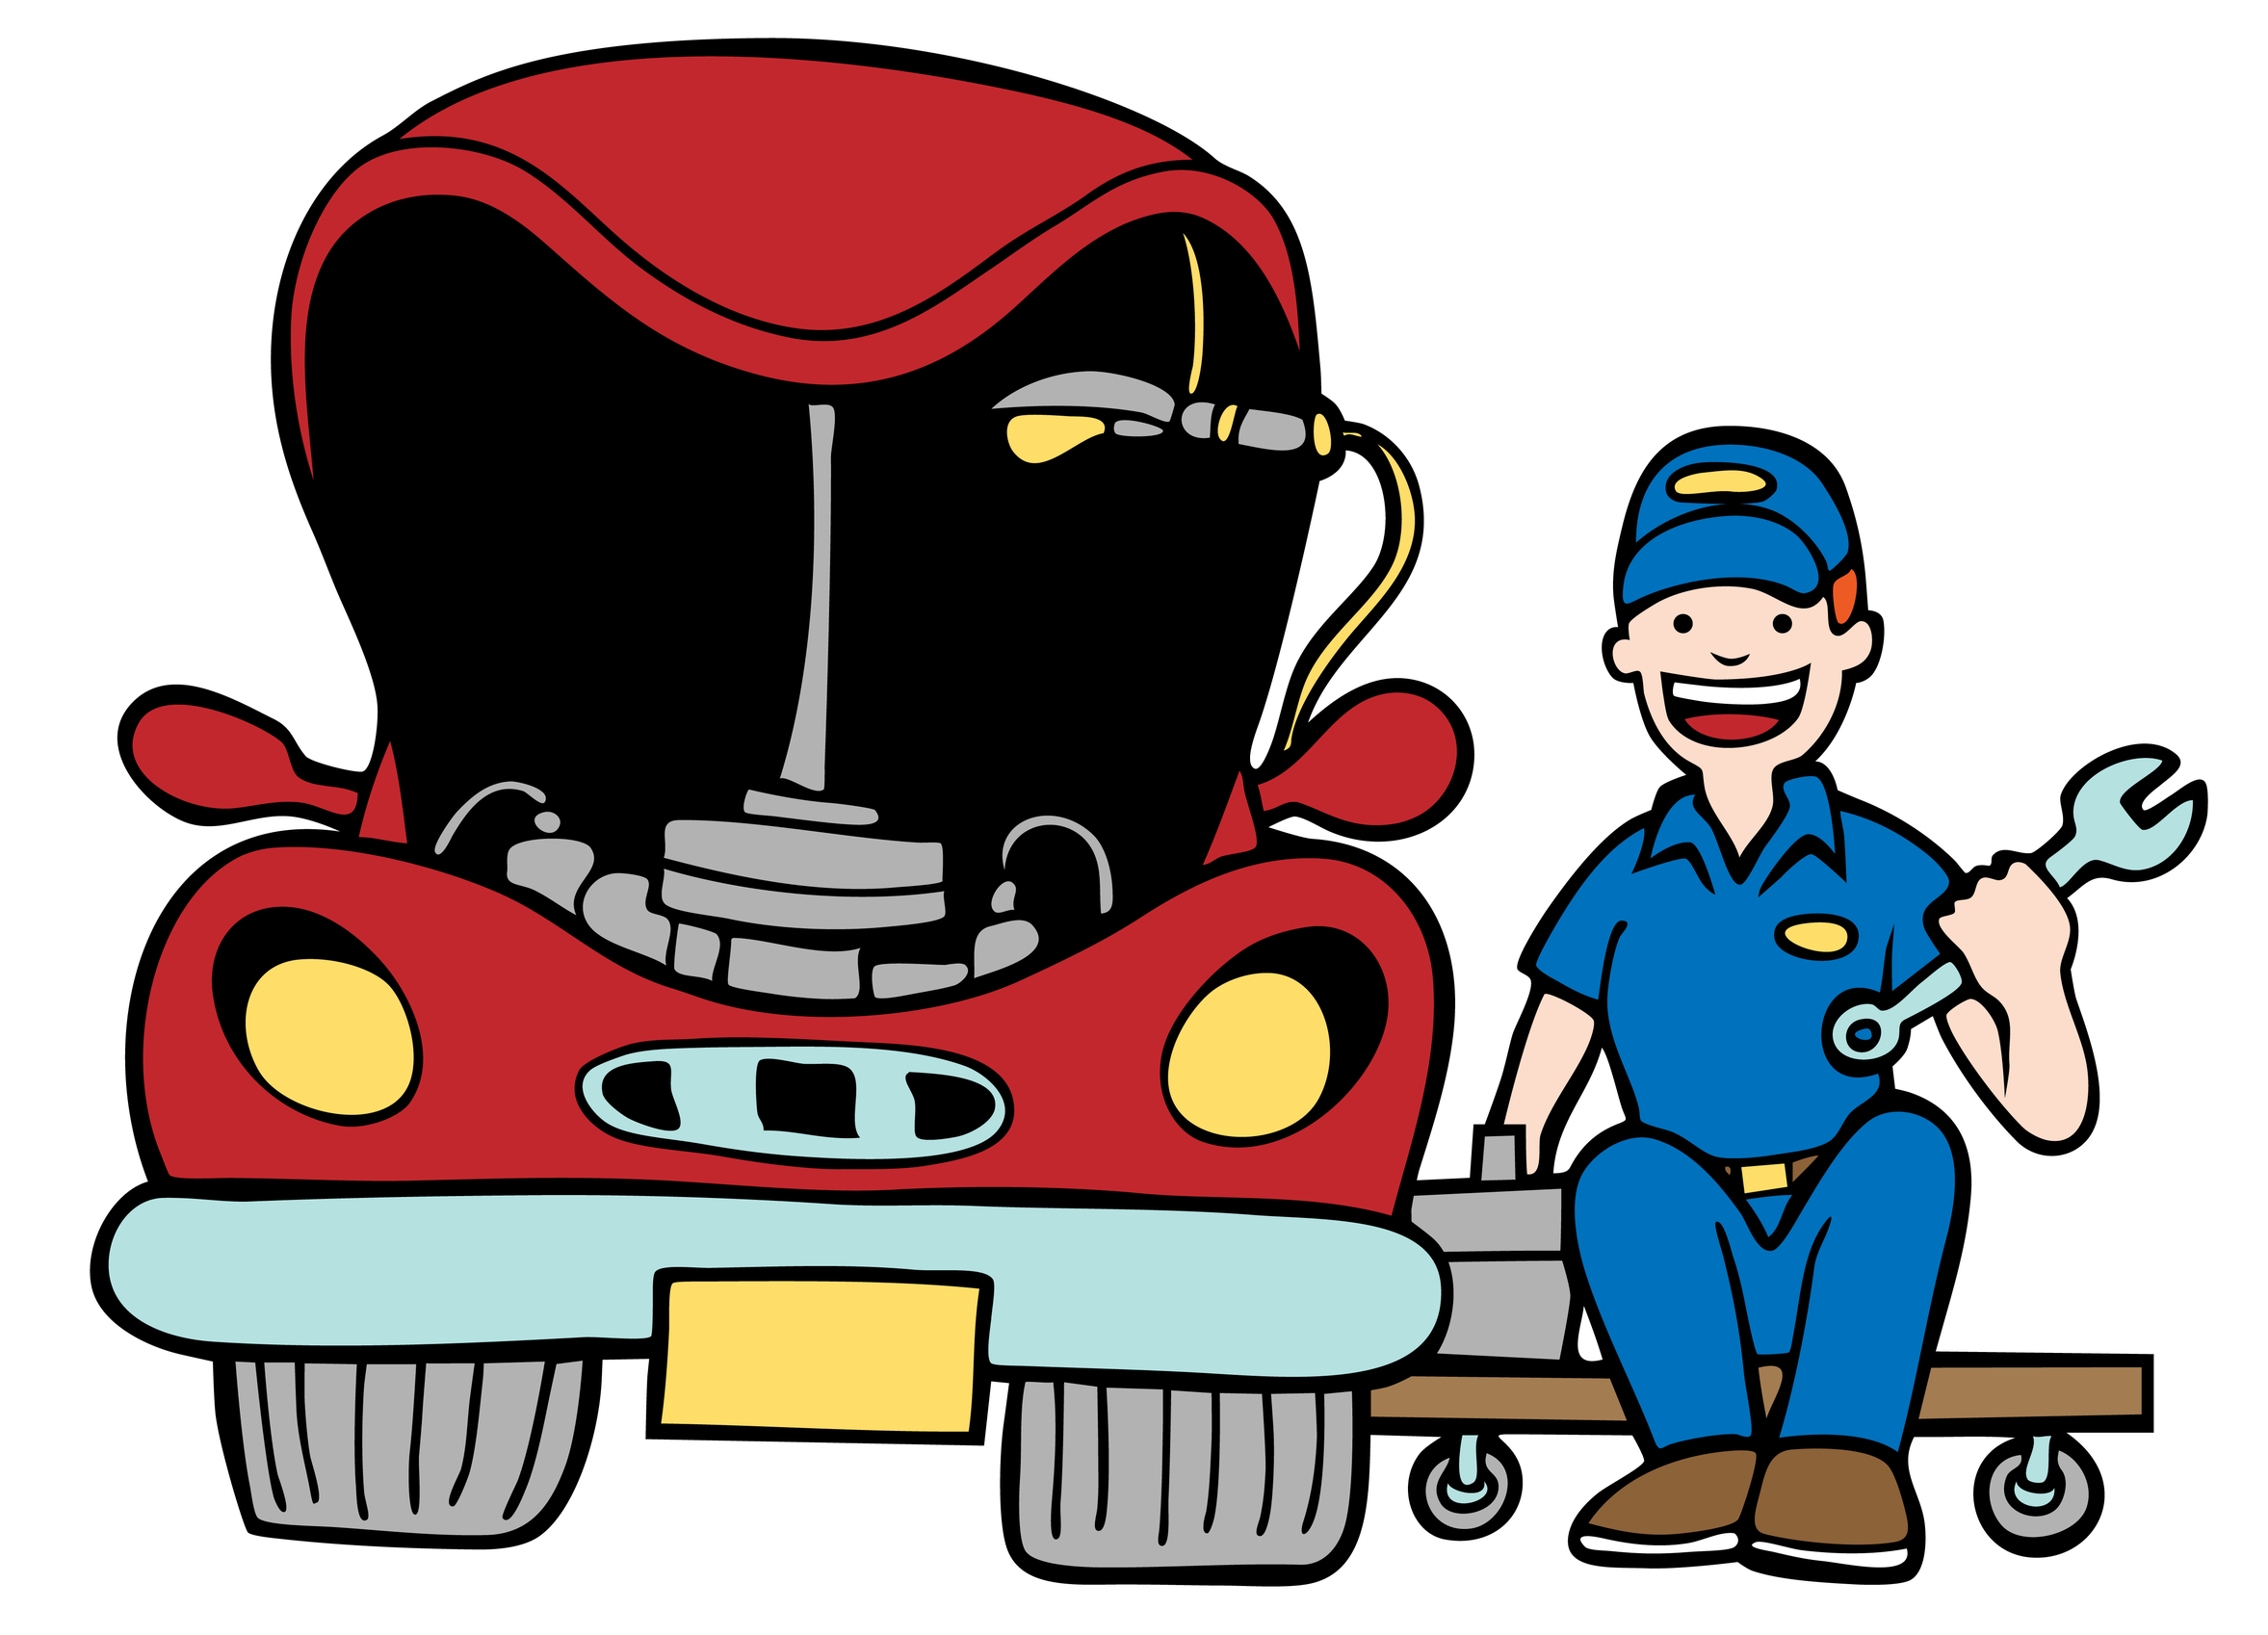 Maintenance vehicle clipart #16